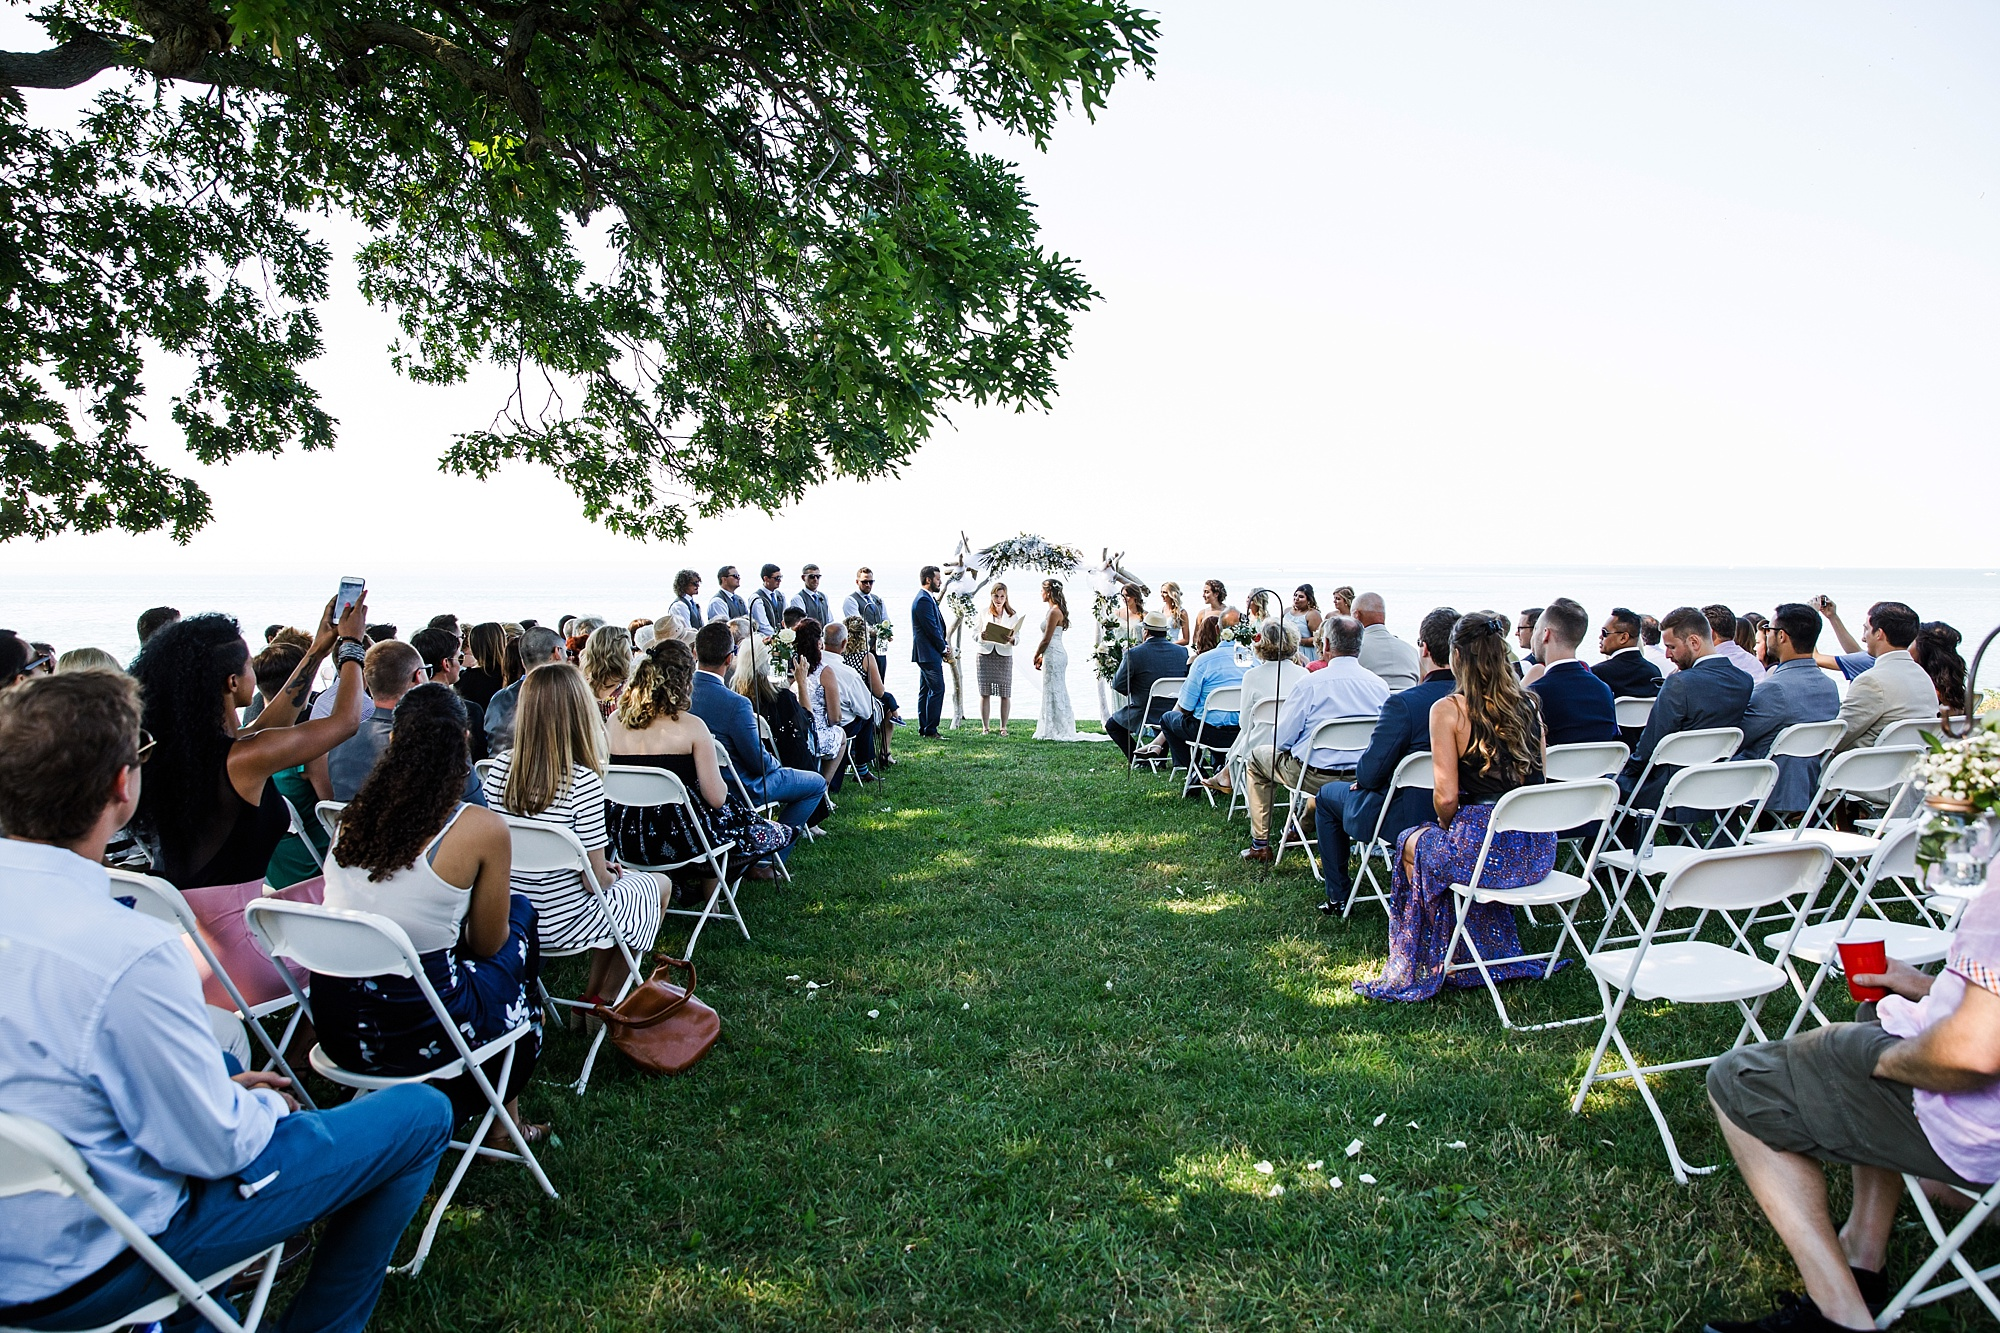 niagaraonthelake-backyardwedding_0049.jpg